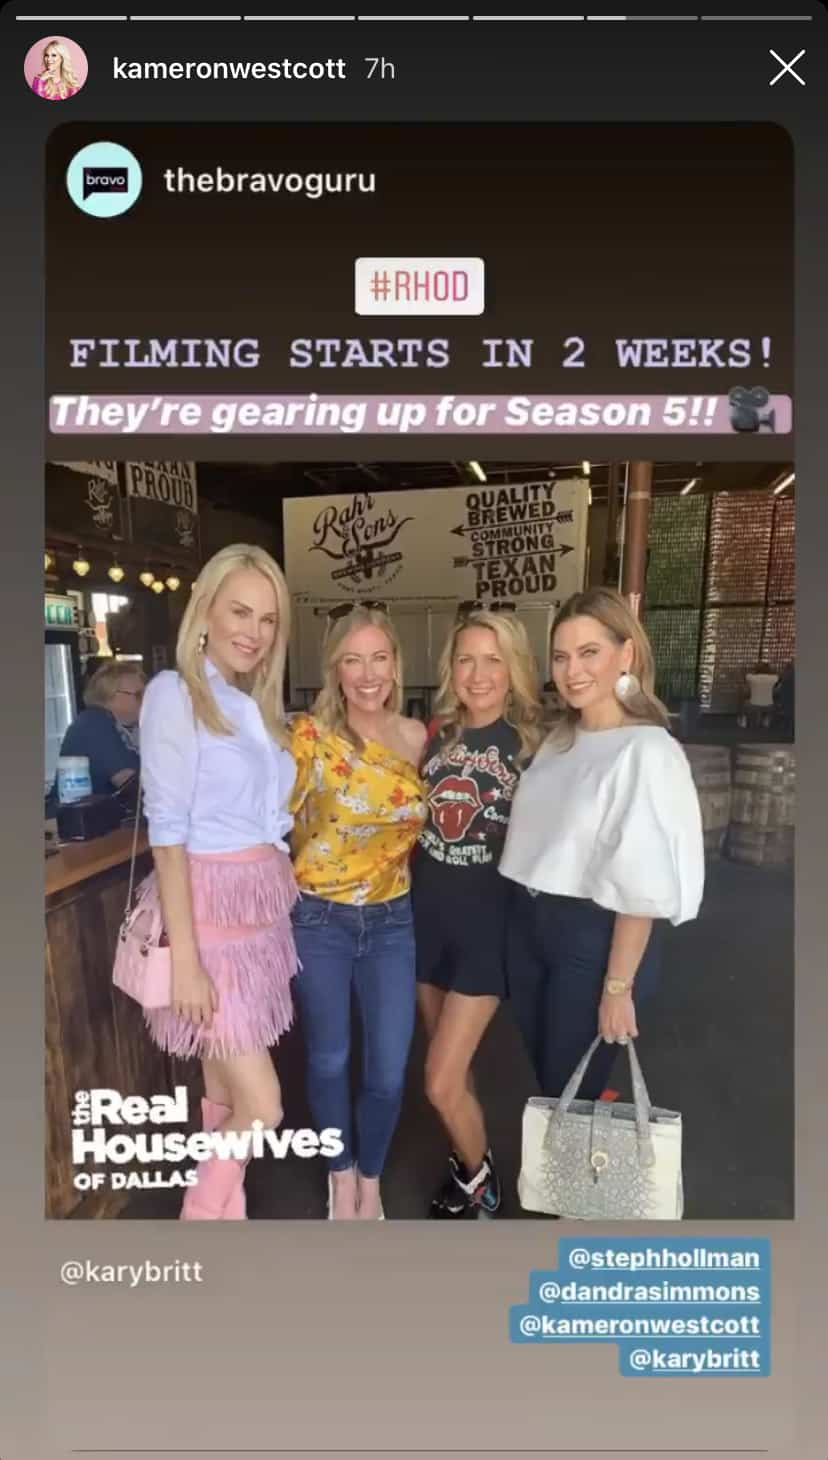 RHOD Kameron Westcott Confirms Filming on RHOD Season Five Starts in Two Weeks